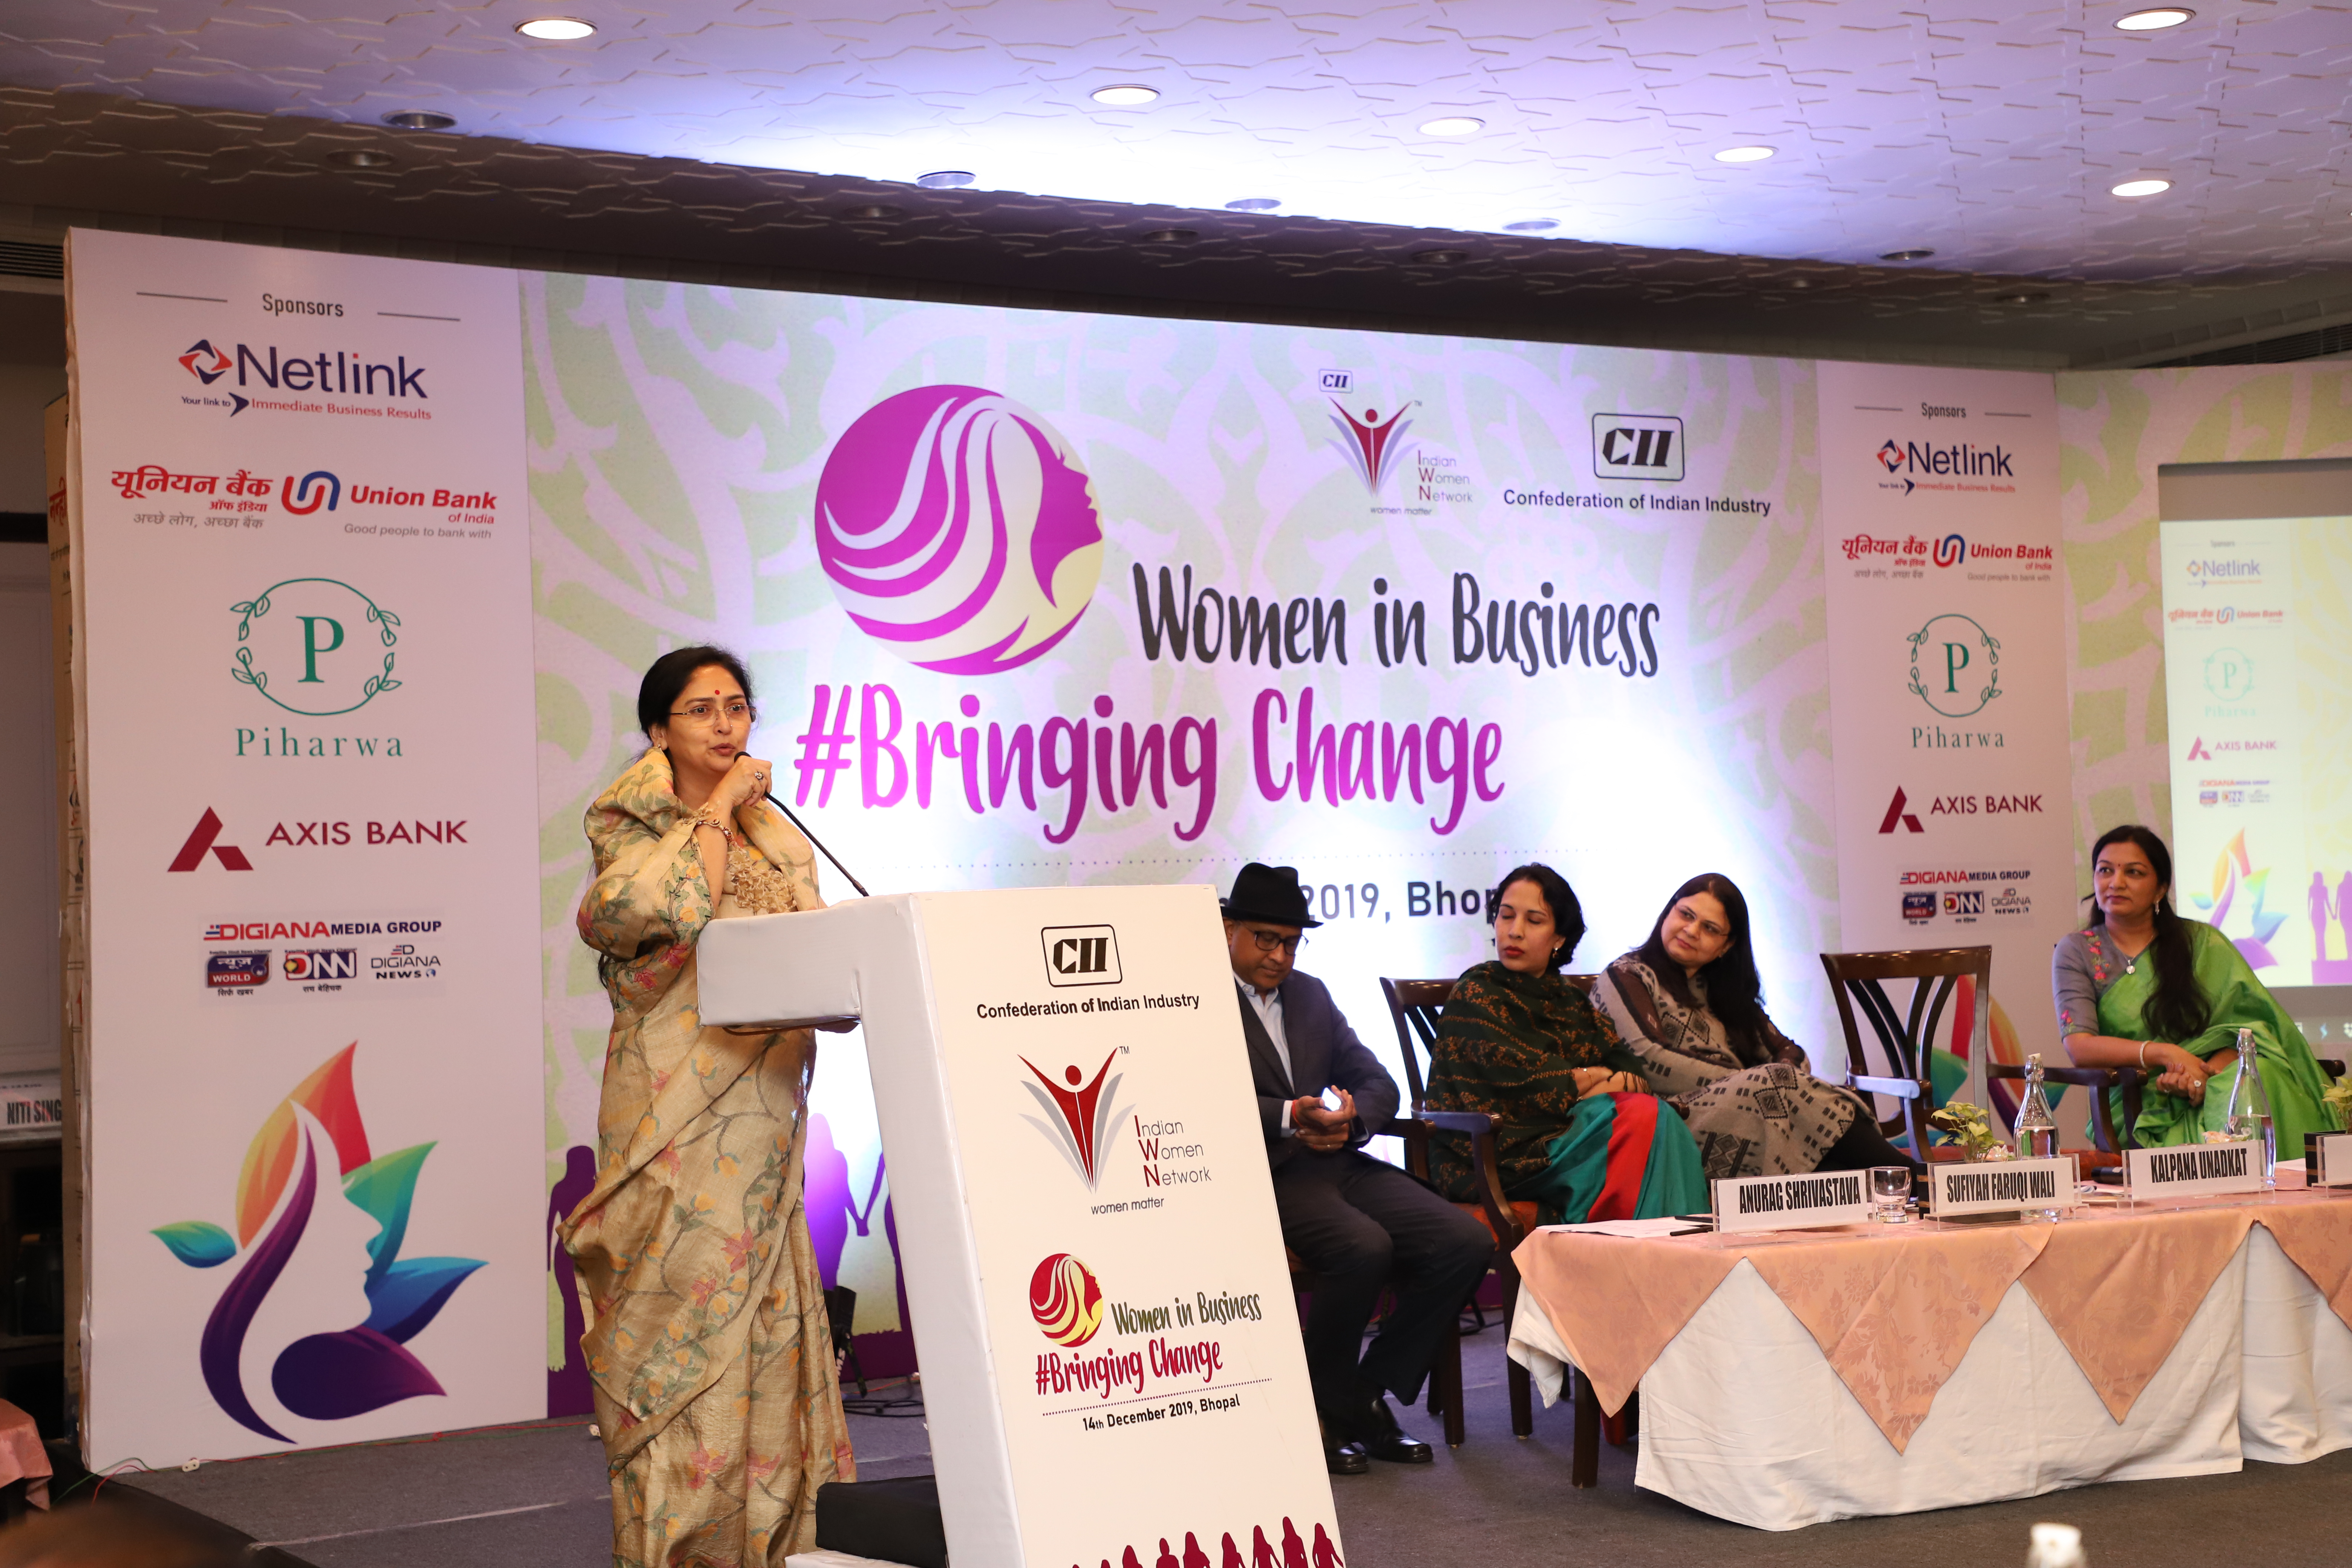 CII - IWN Women in Business # Bringing Change Conclave 2019